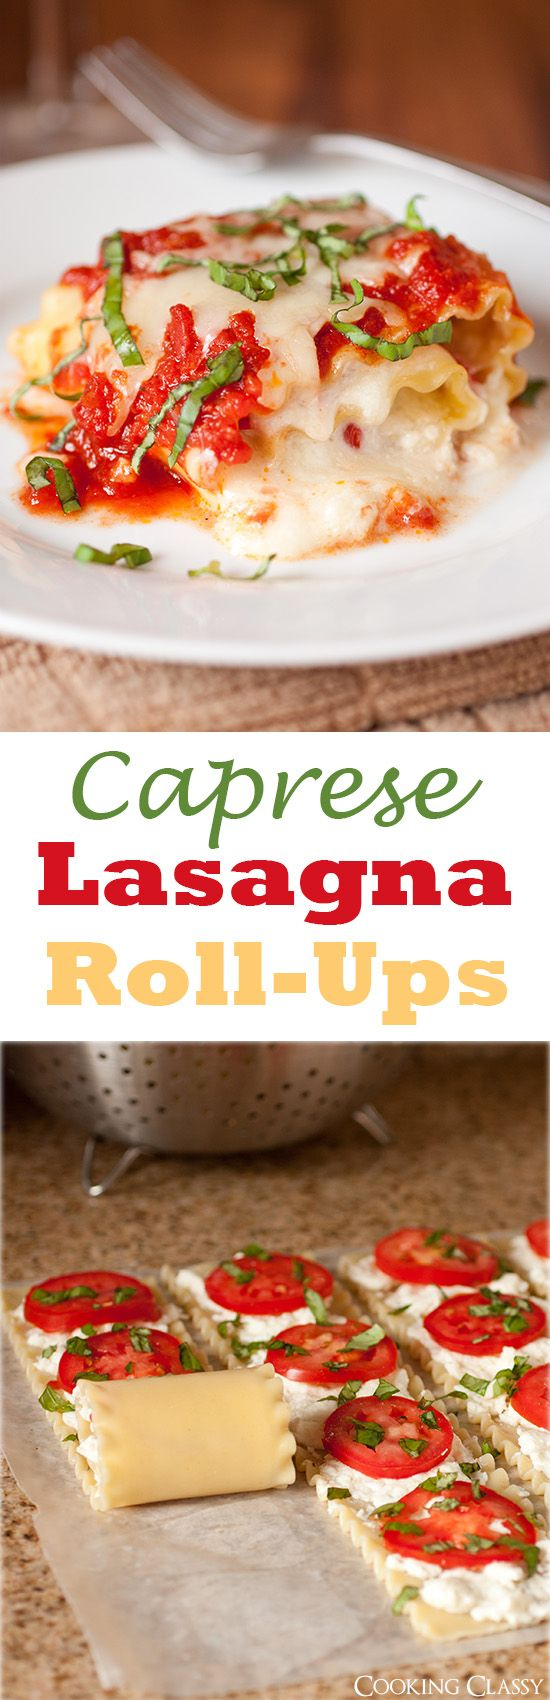 Caprese Lasagna Roll-Ups - perfect cheesy tomato basil goodness right there! These have gotten great reviews!